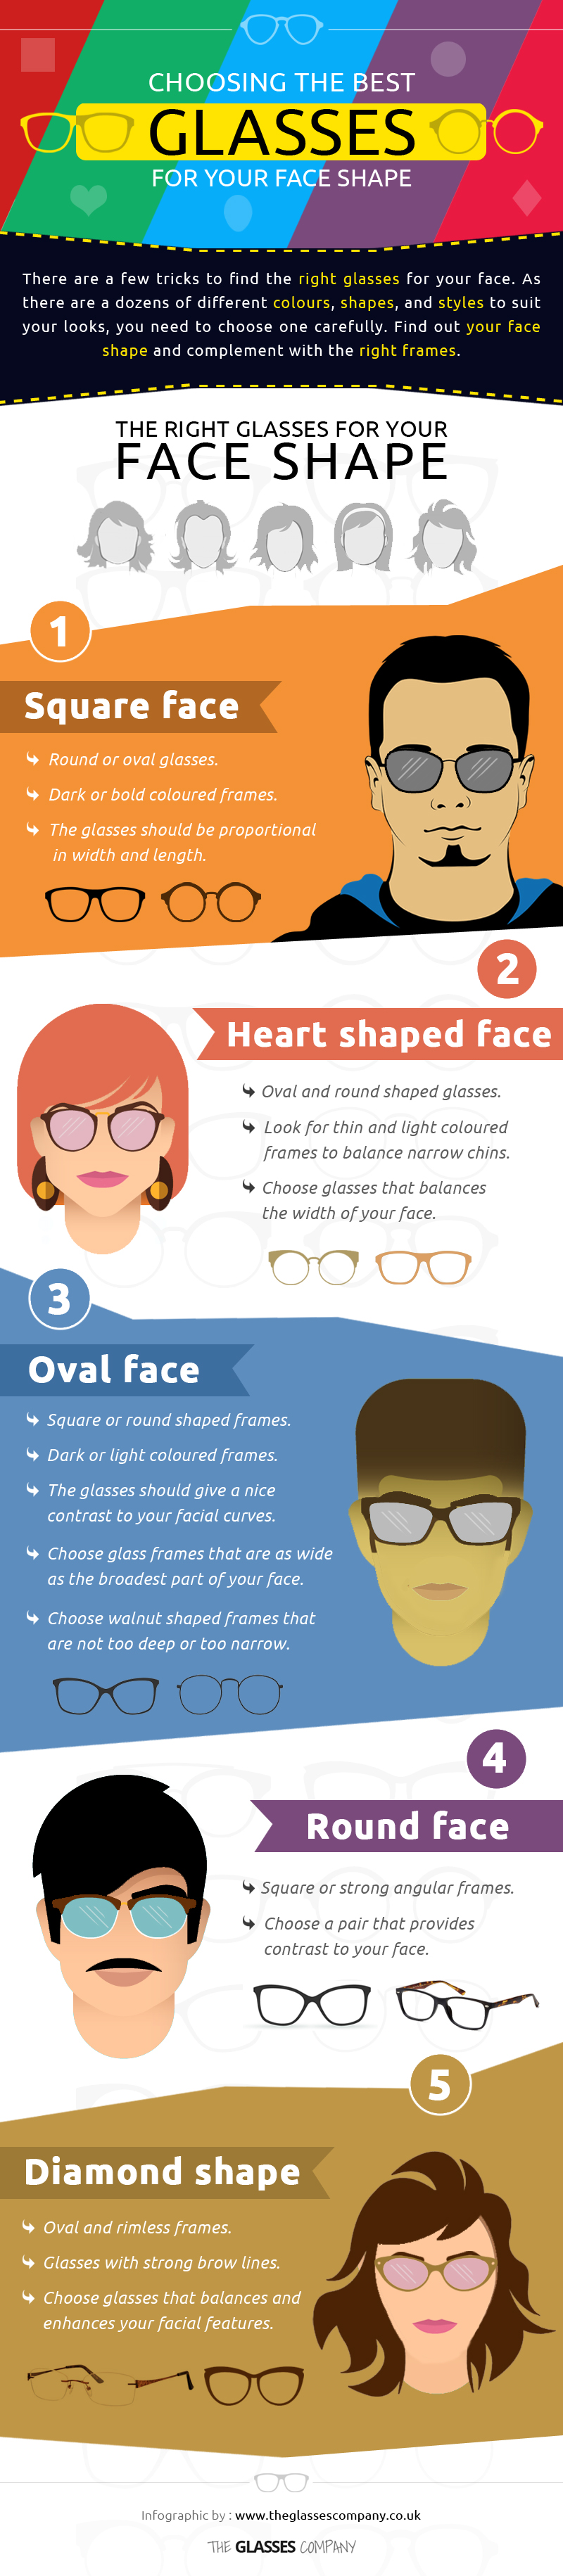 Choosing the best glasses for your face shape